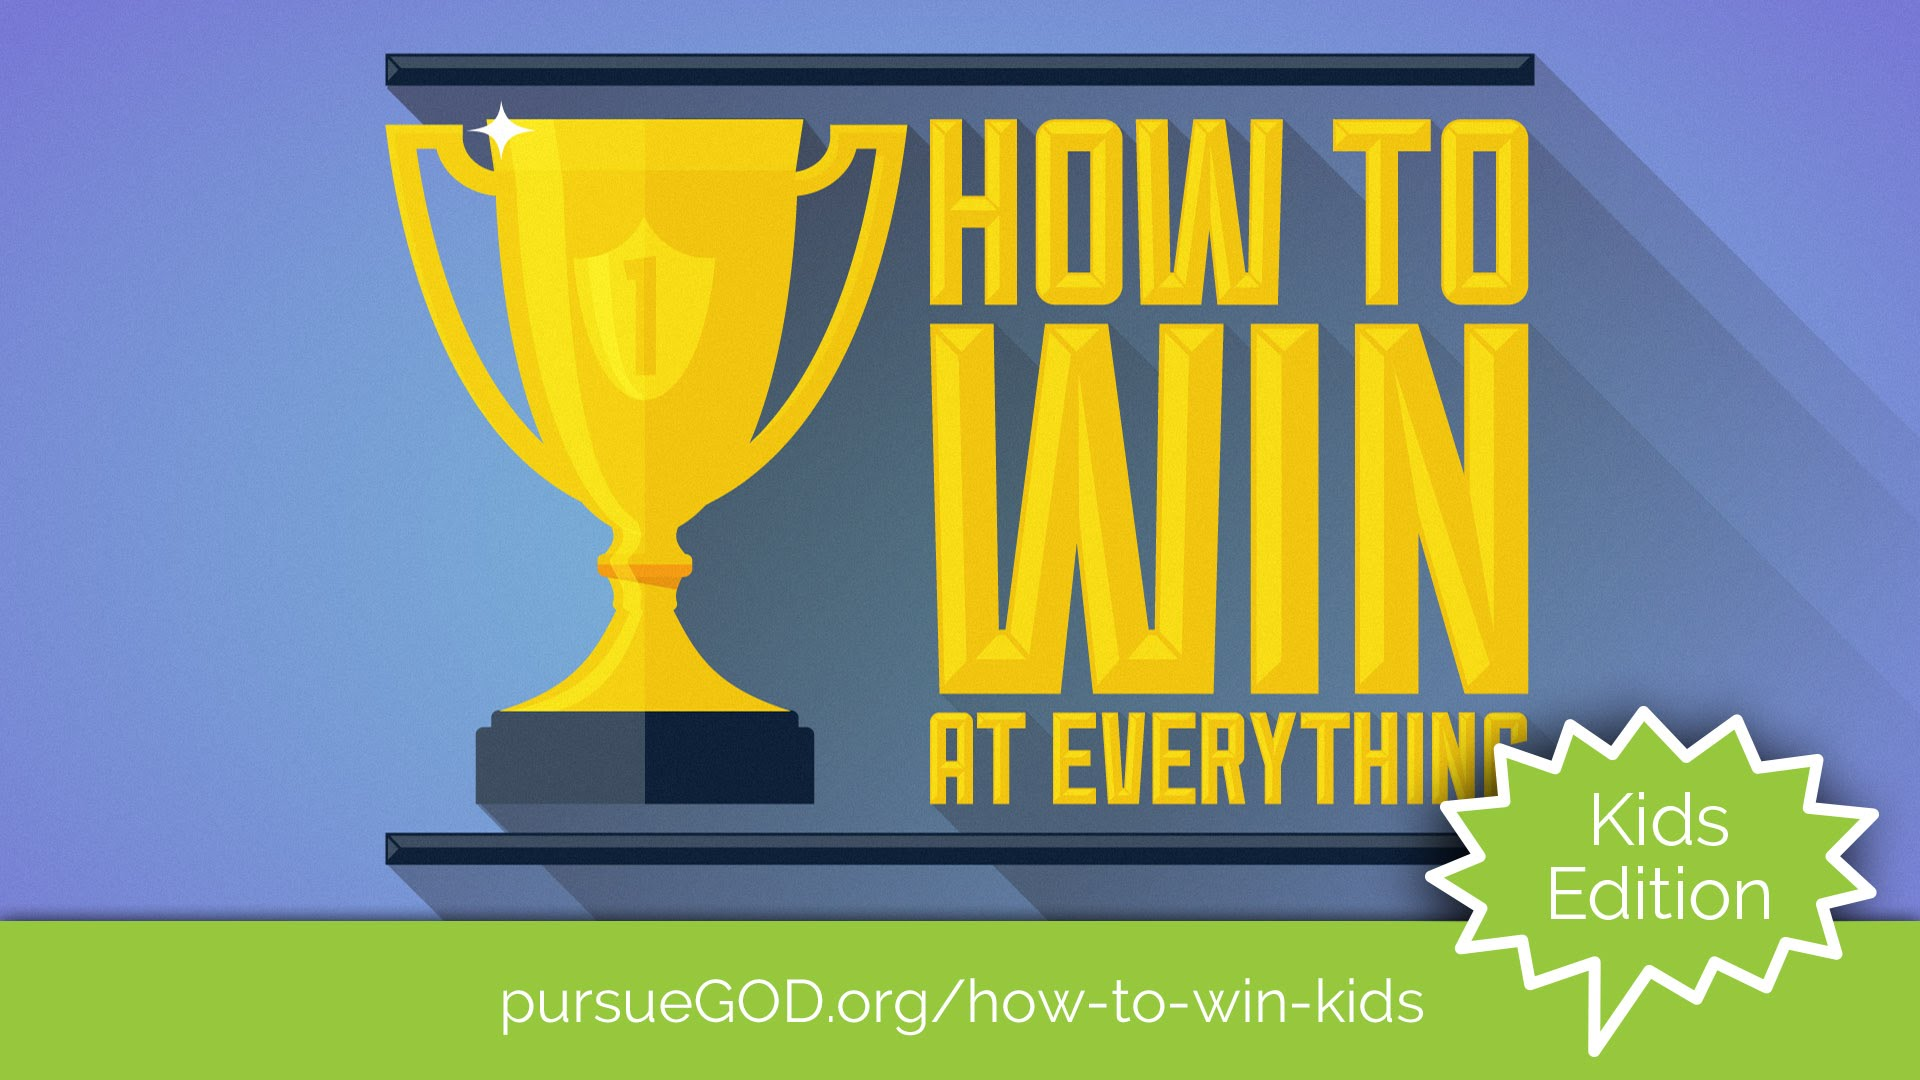 Wie man bei Everything gewinnt (Kids Series)